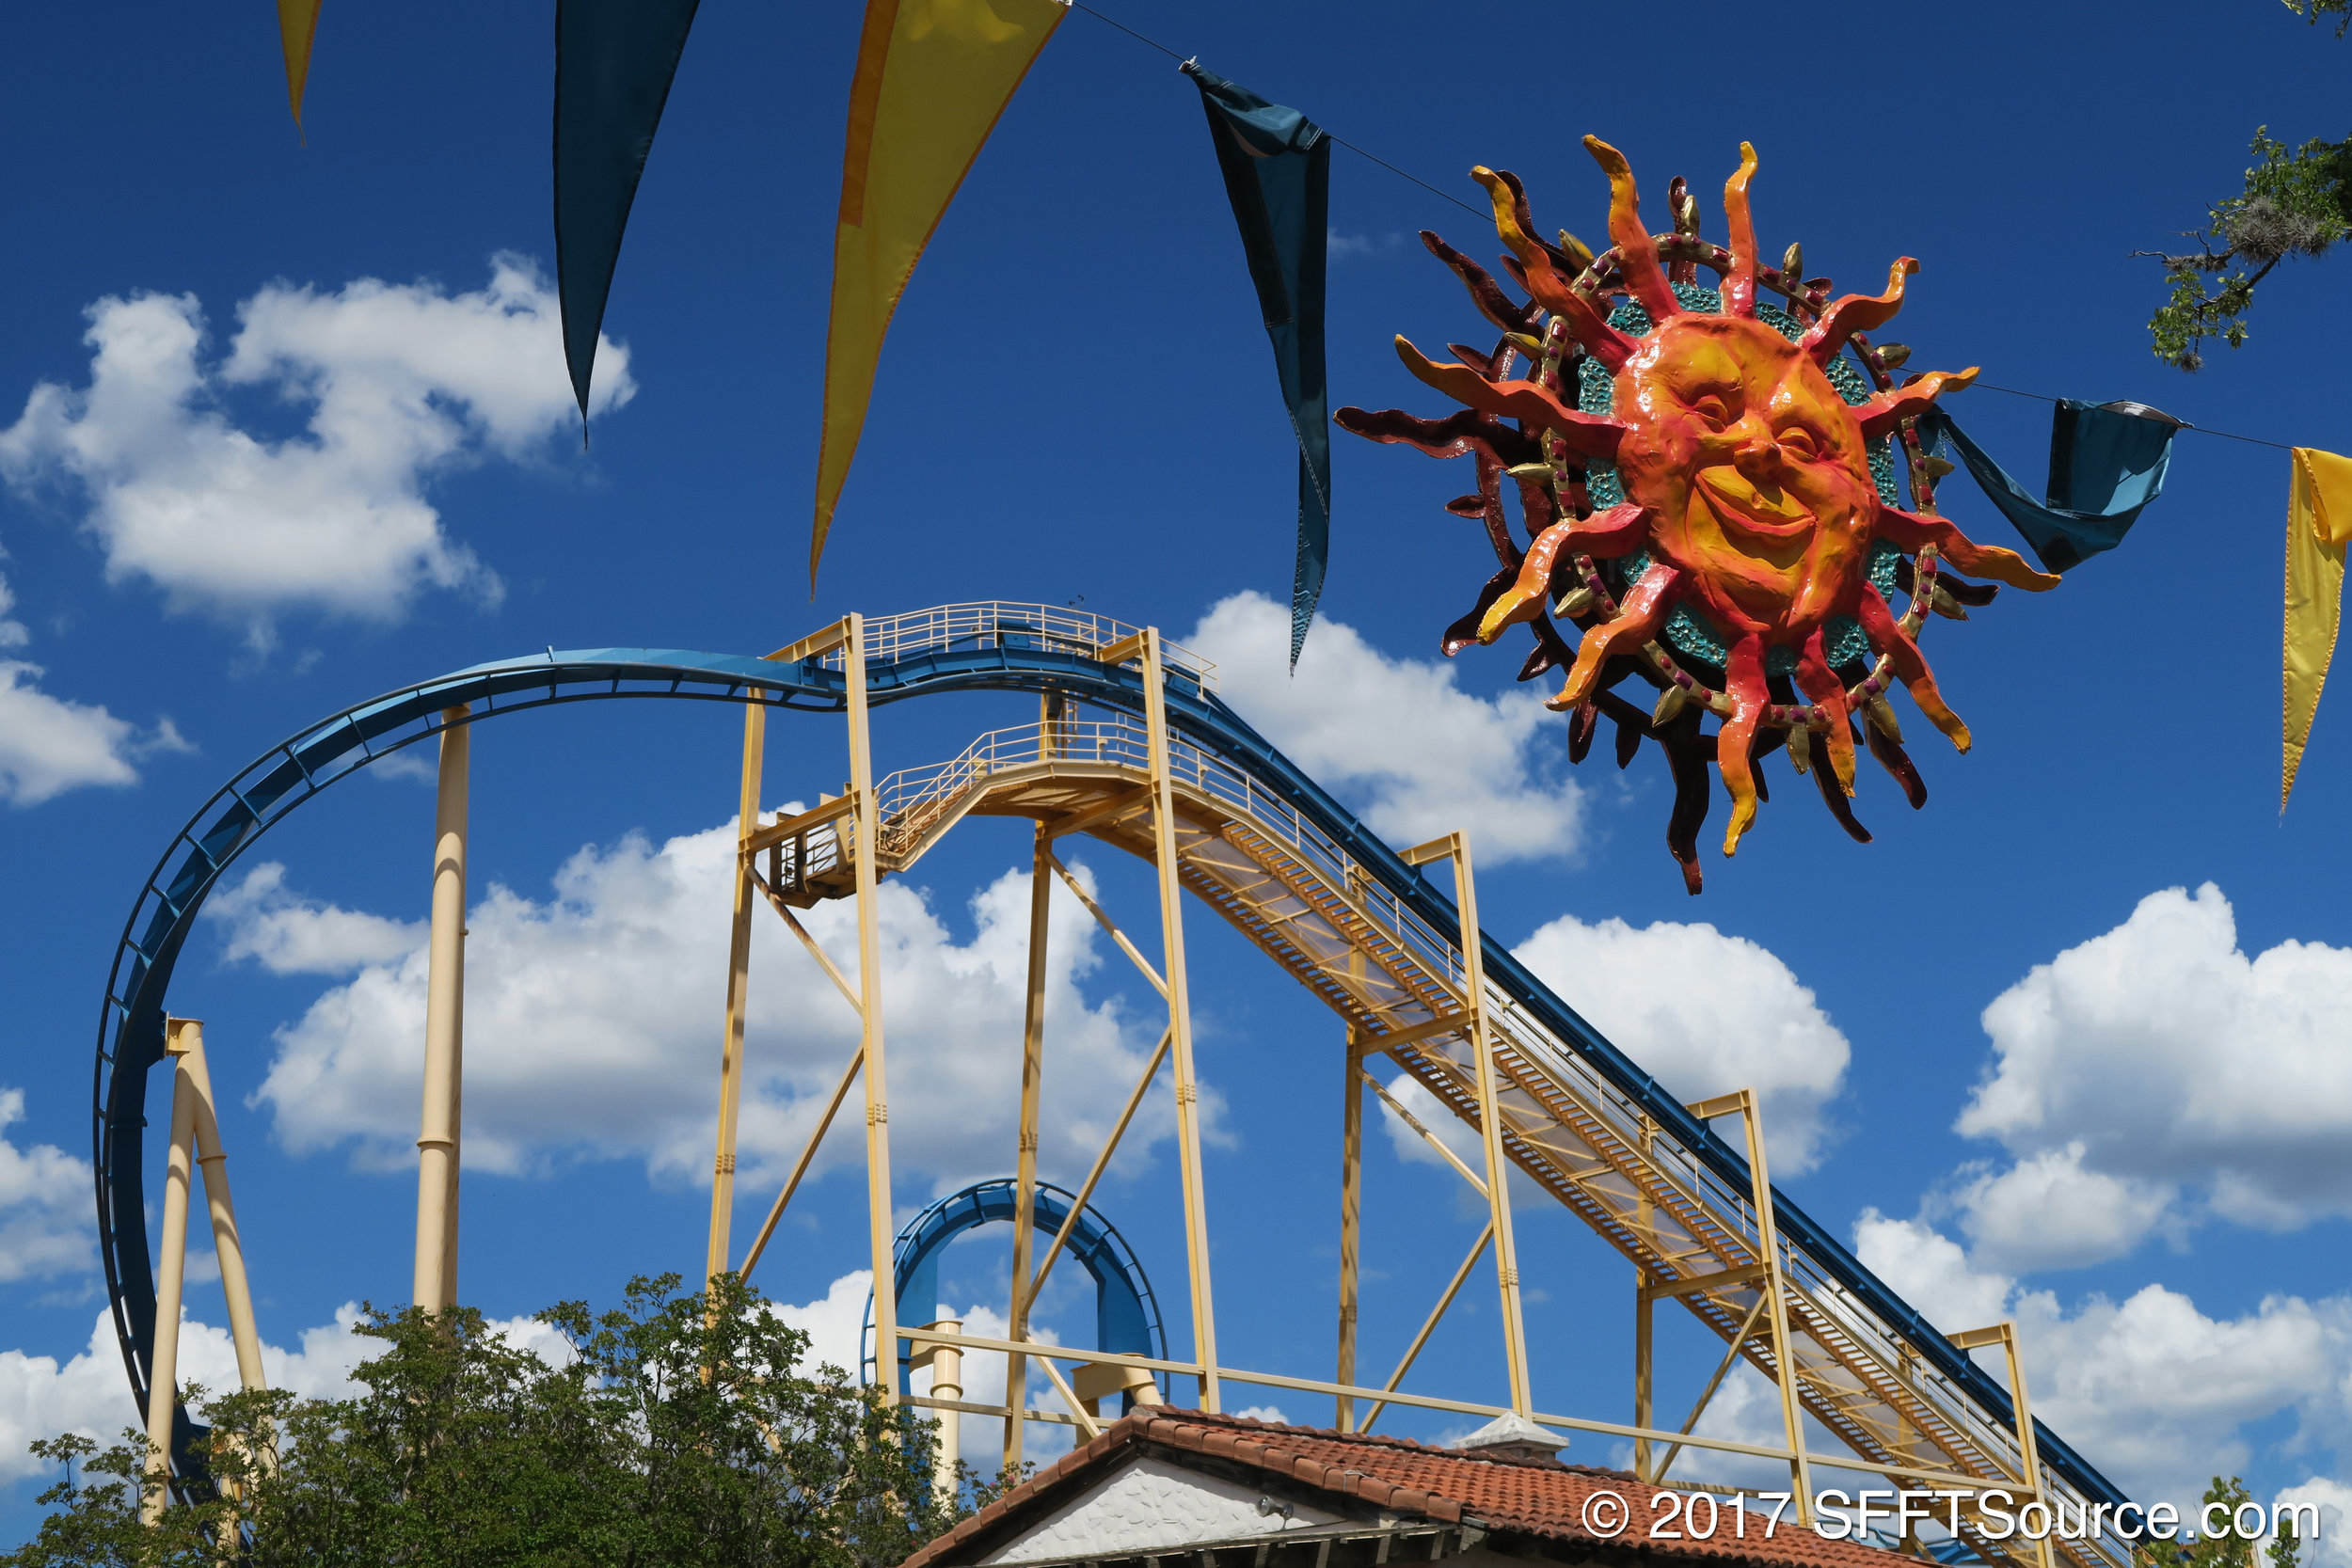 Goliath is one of the area's main attractions.